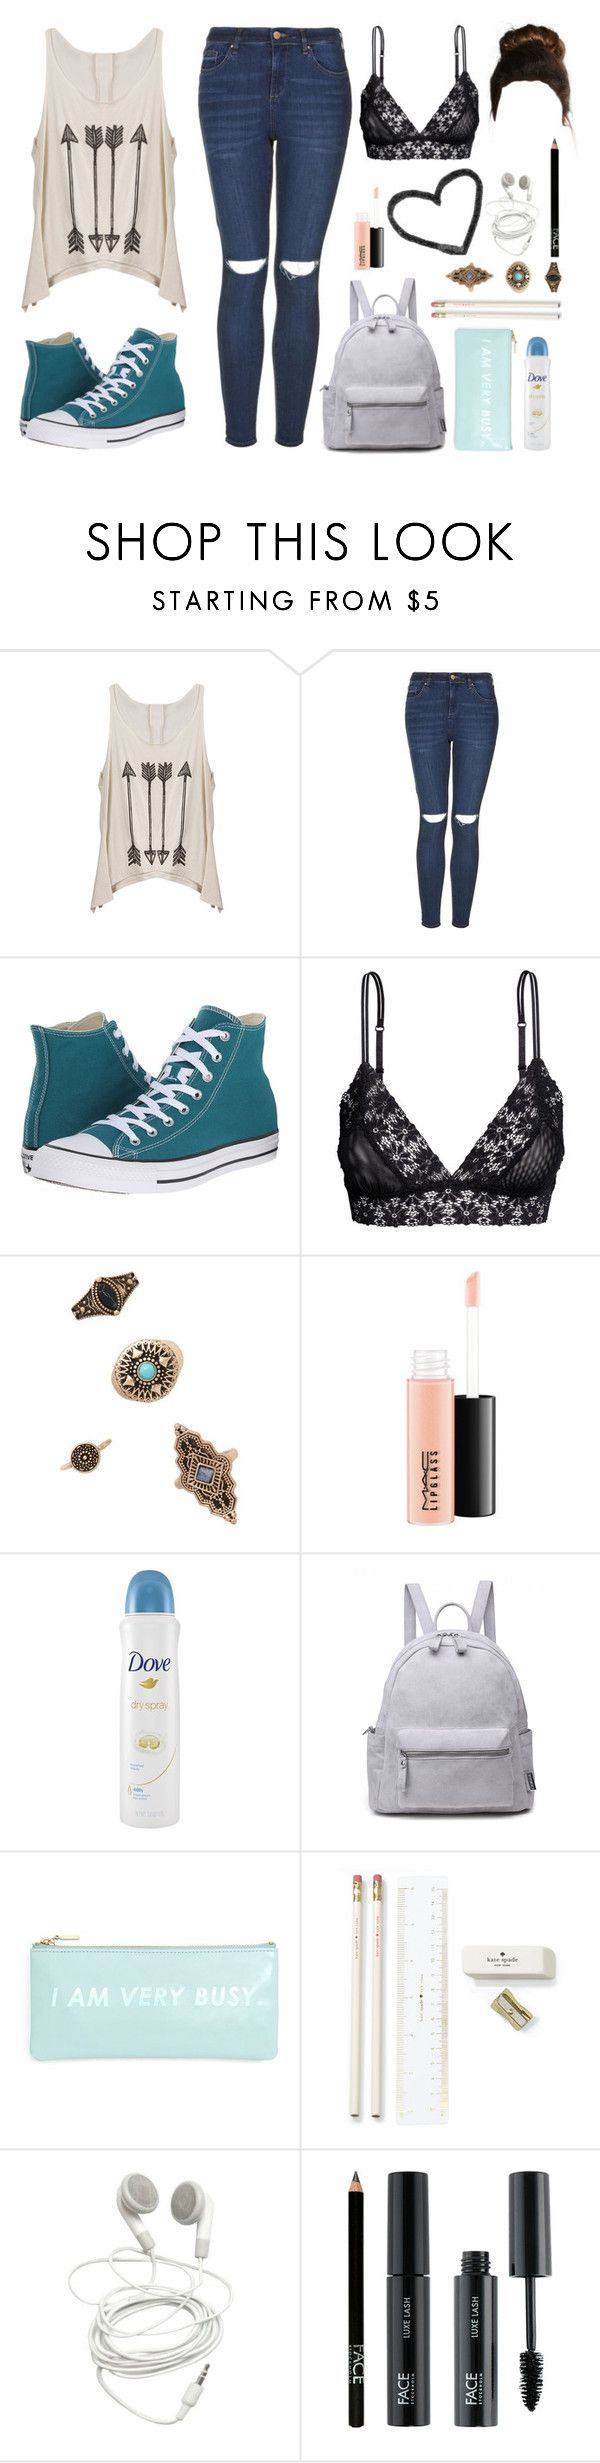 """back to school 1/3"" by sweetprimrose ❤ liked on Polyvore featuring Topshop, Converse, Forever 21, MAC Cosmetics, Dove, ban.do, Kate Spade and FACE Stockholm"